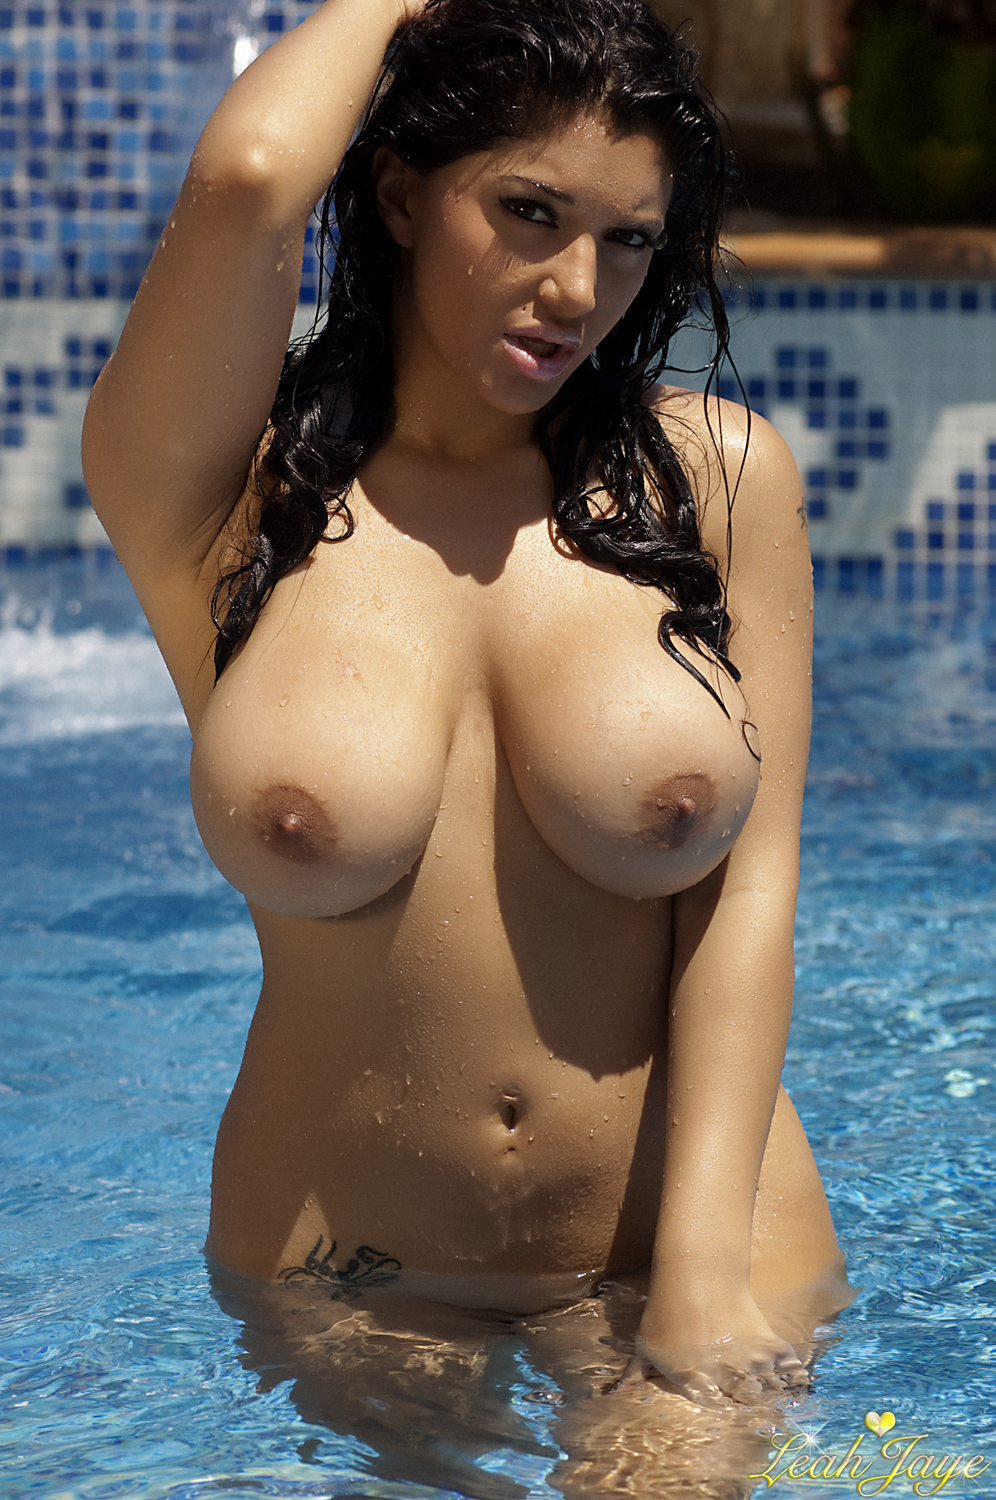 Boob pool swimming